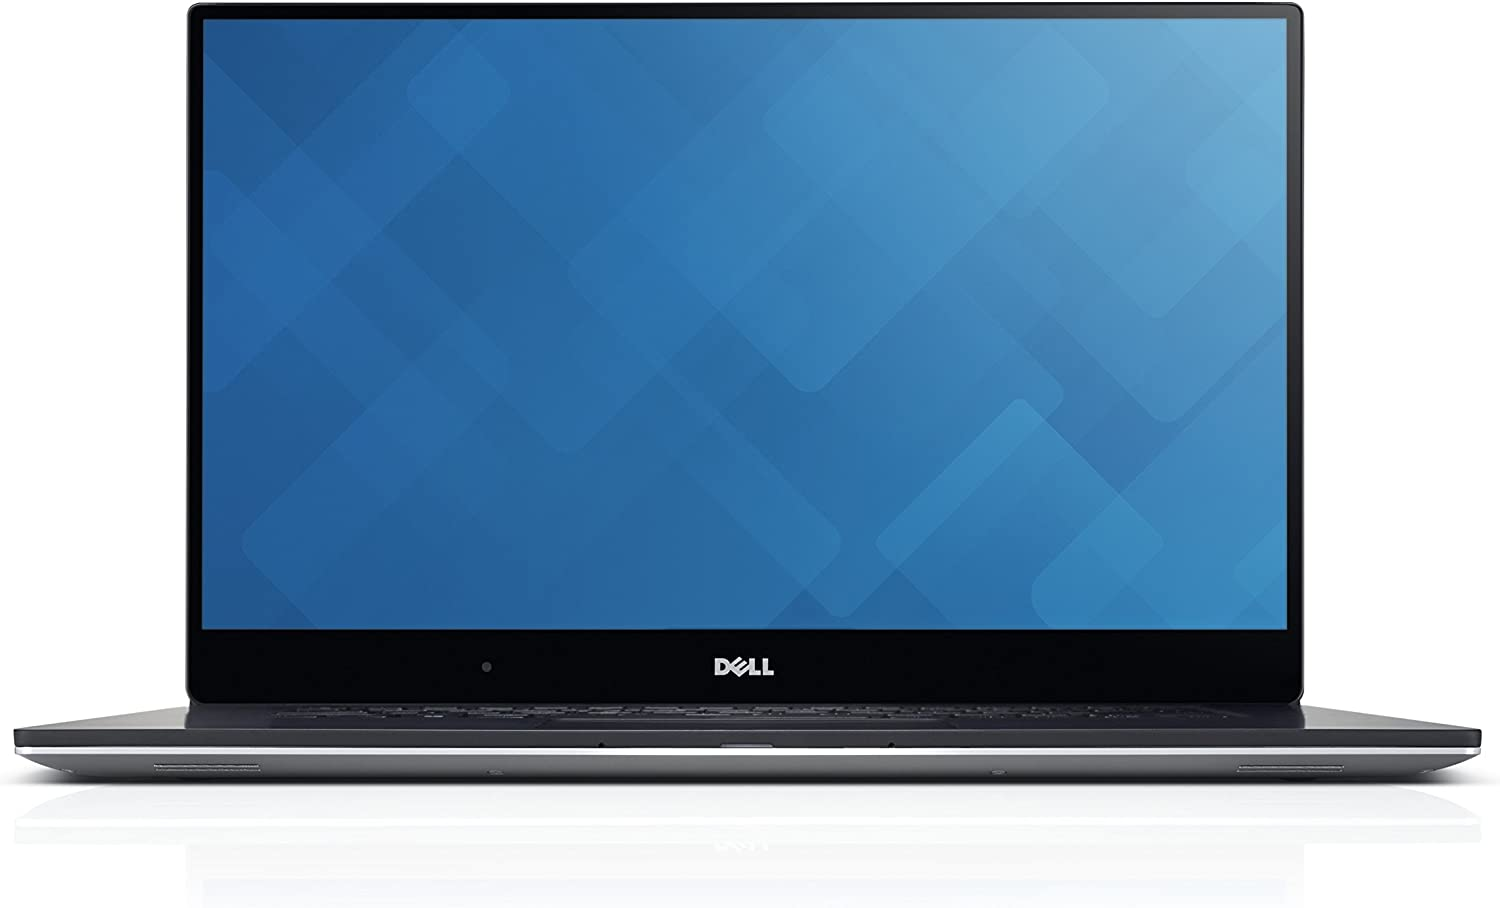 Dell XPS 15 9560 4K UHD TOUCHSCREEN i7-7700HQ 32GB RAM 1TB SSD Nvidia GTX 1050 4GB GDDR5 FINGERPRINT Windows 10 Home (Renewed)